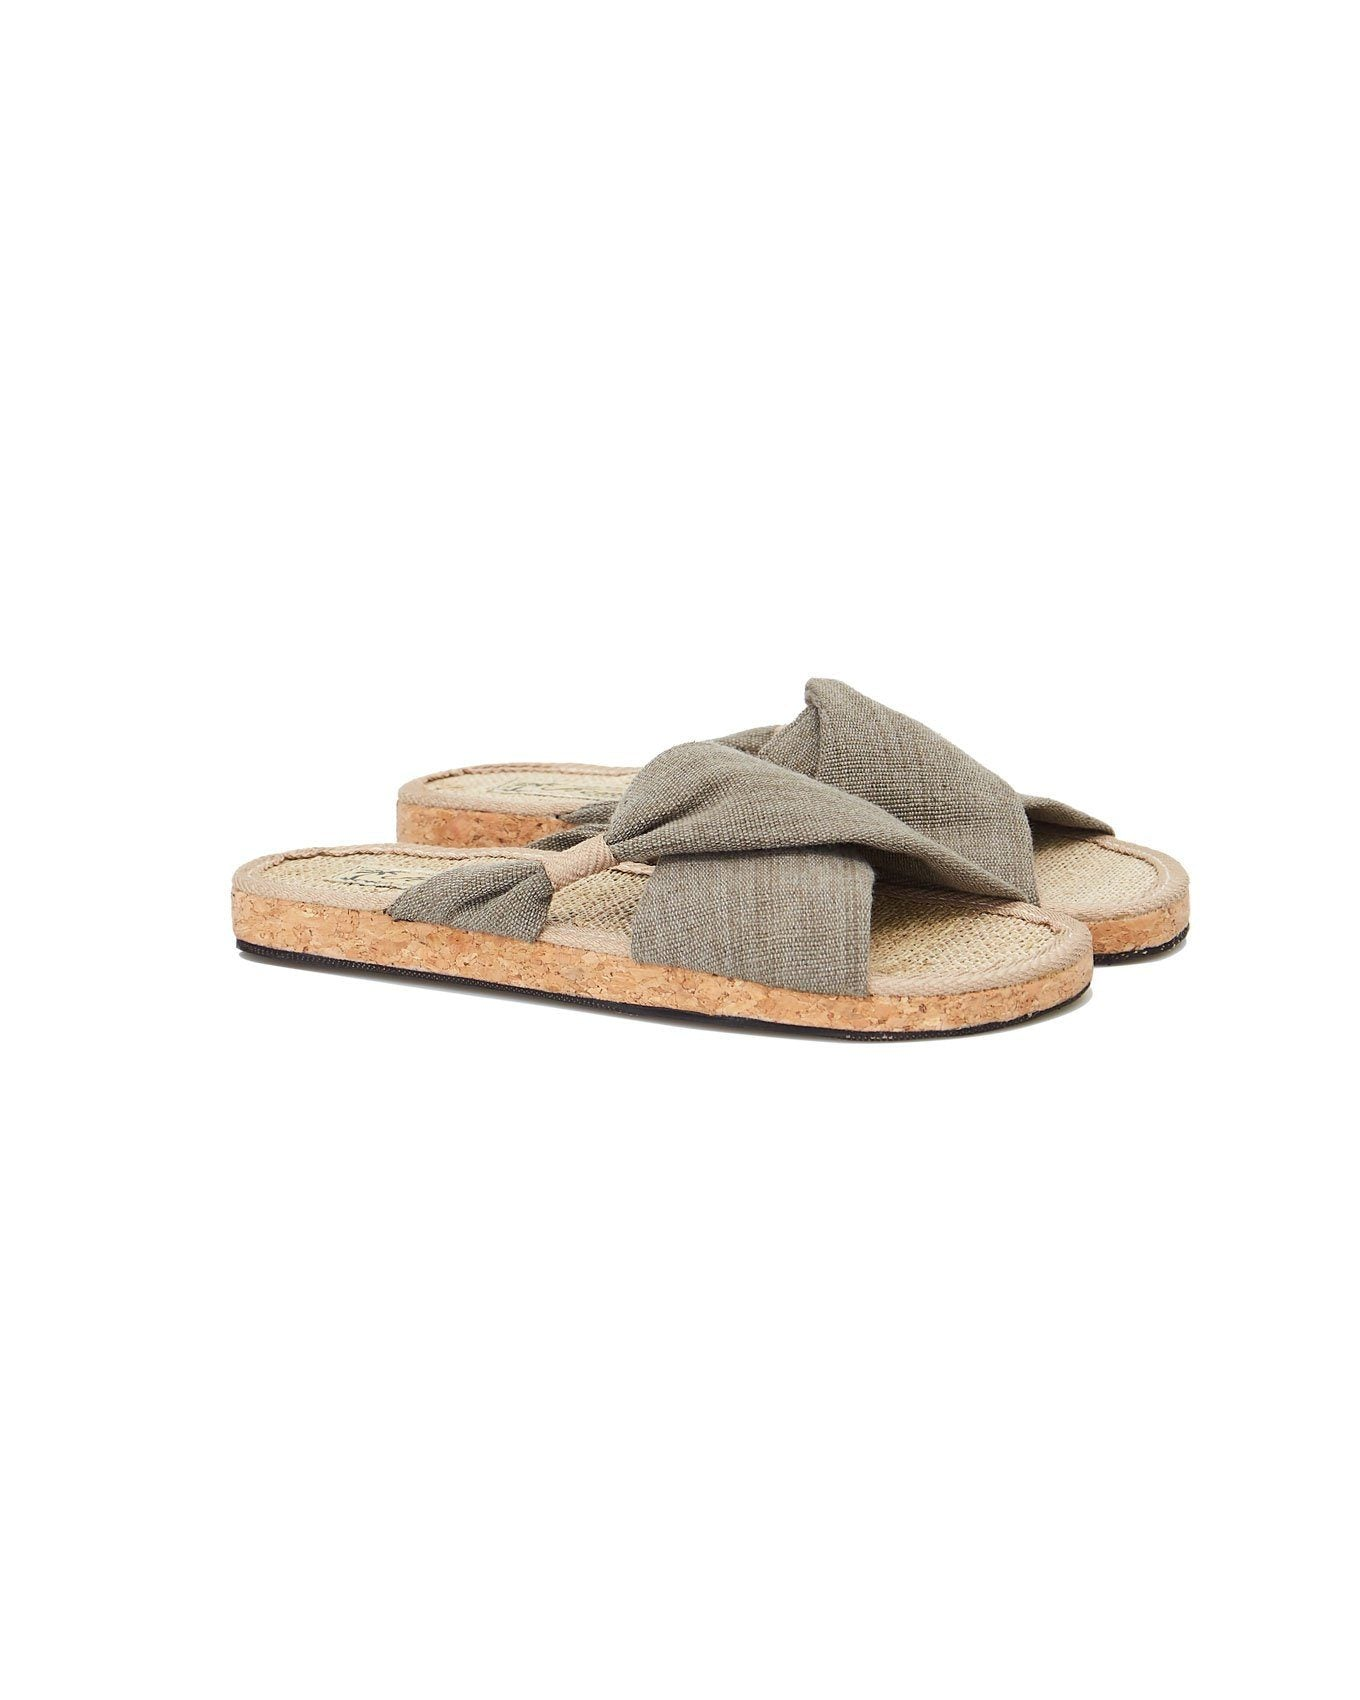 Shoes - HELENA SLIDER Khaki